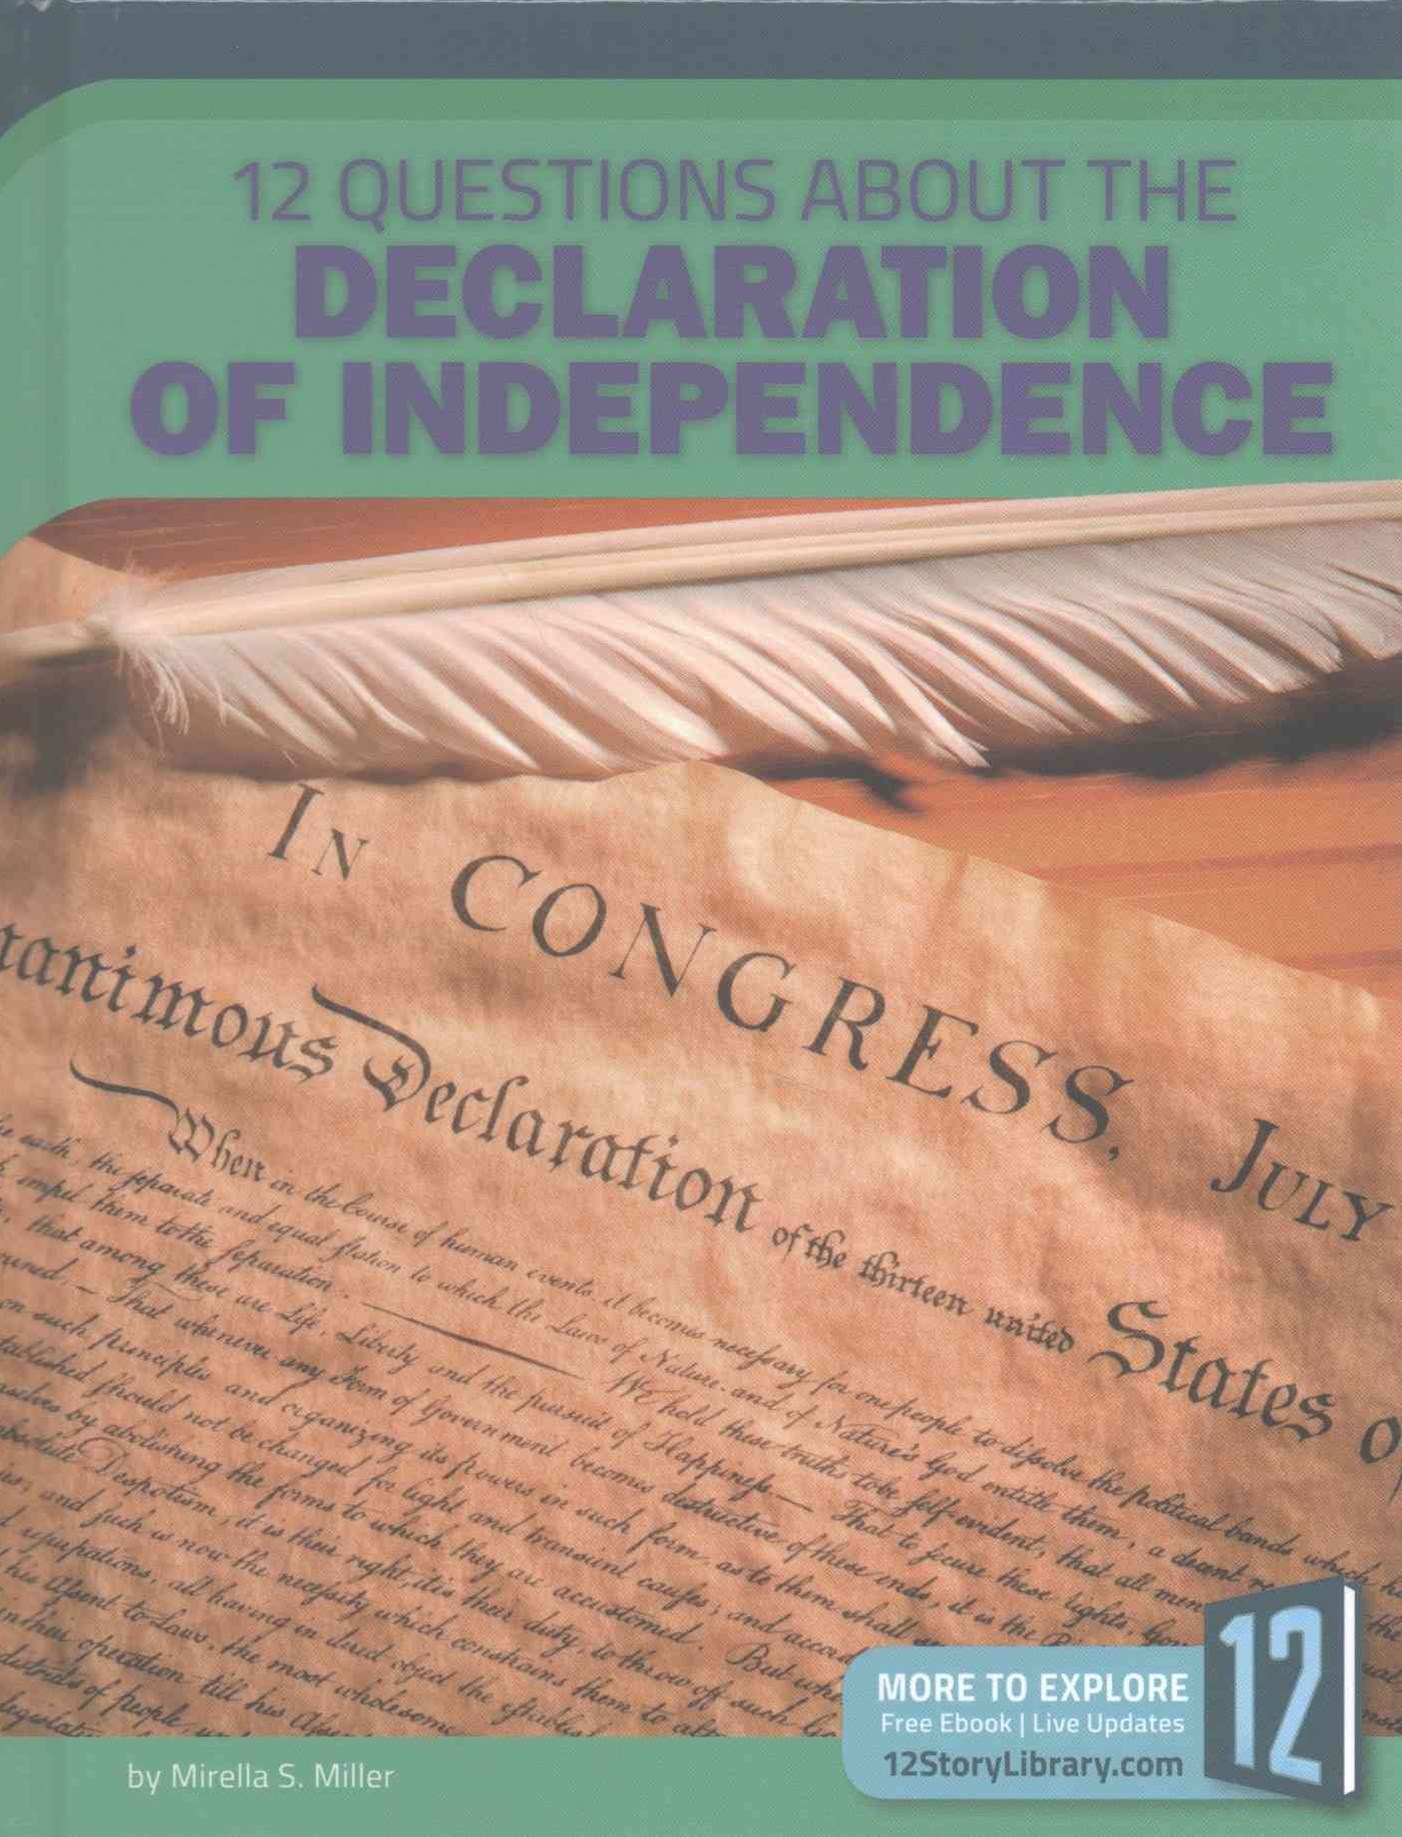 12 Questions about the Declaration of Independence